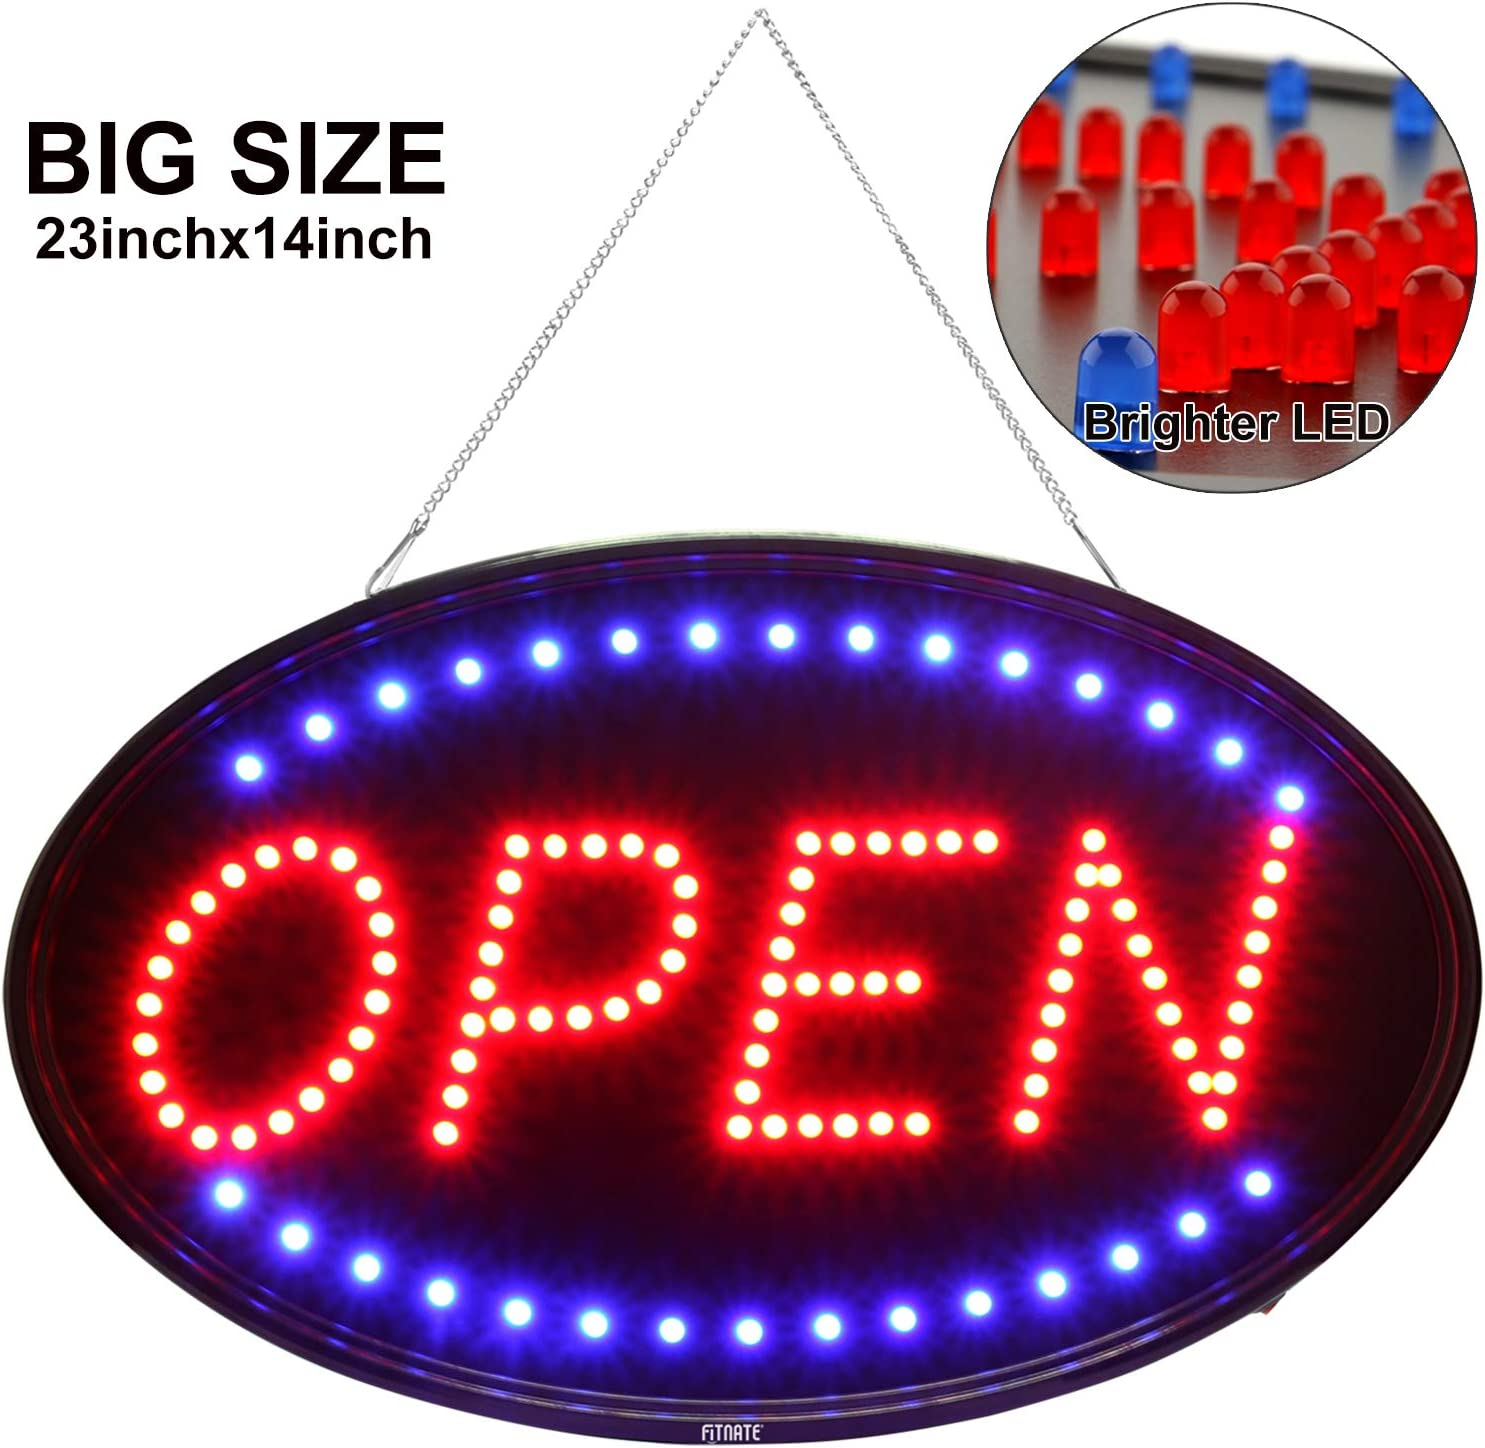 Flashing OPEN LED sign board new window Shop signs Large size